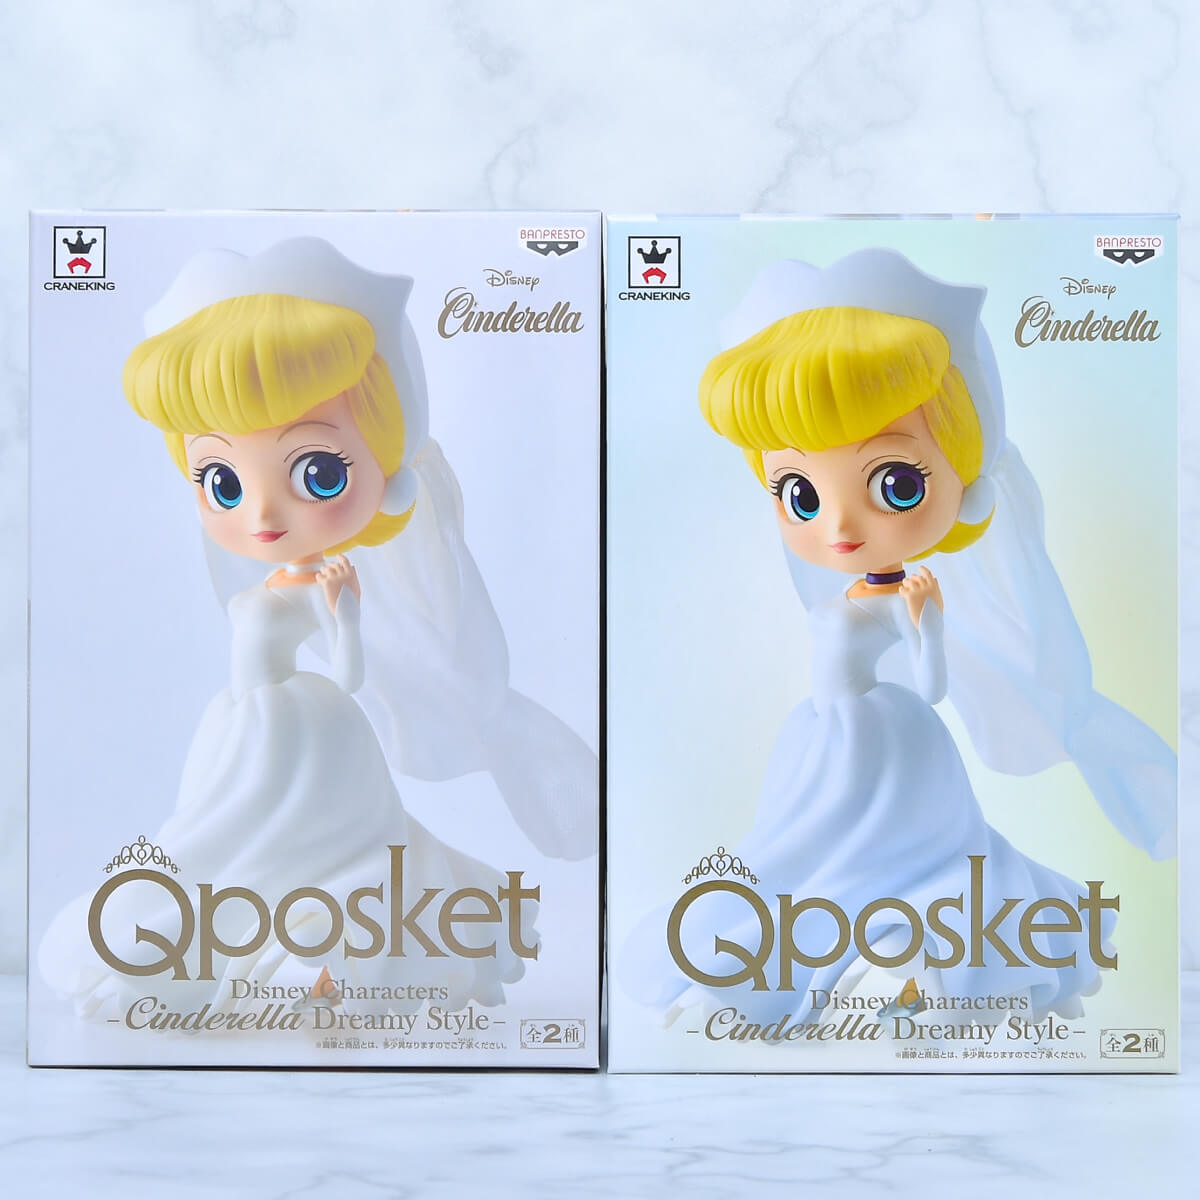 Q posket Disney Characters-Cinderella Dreamy Style- パッケージ